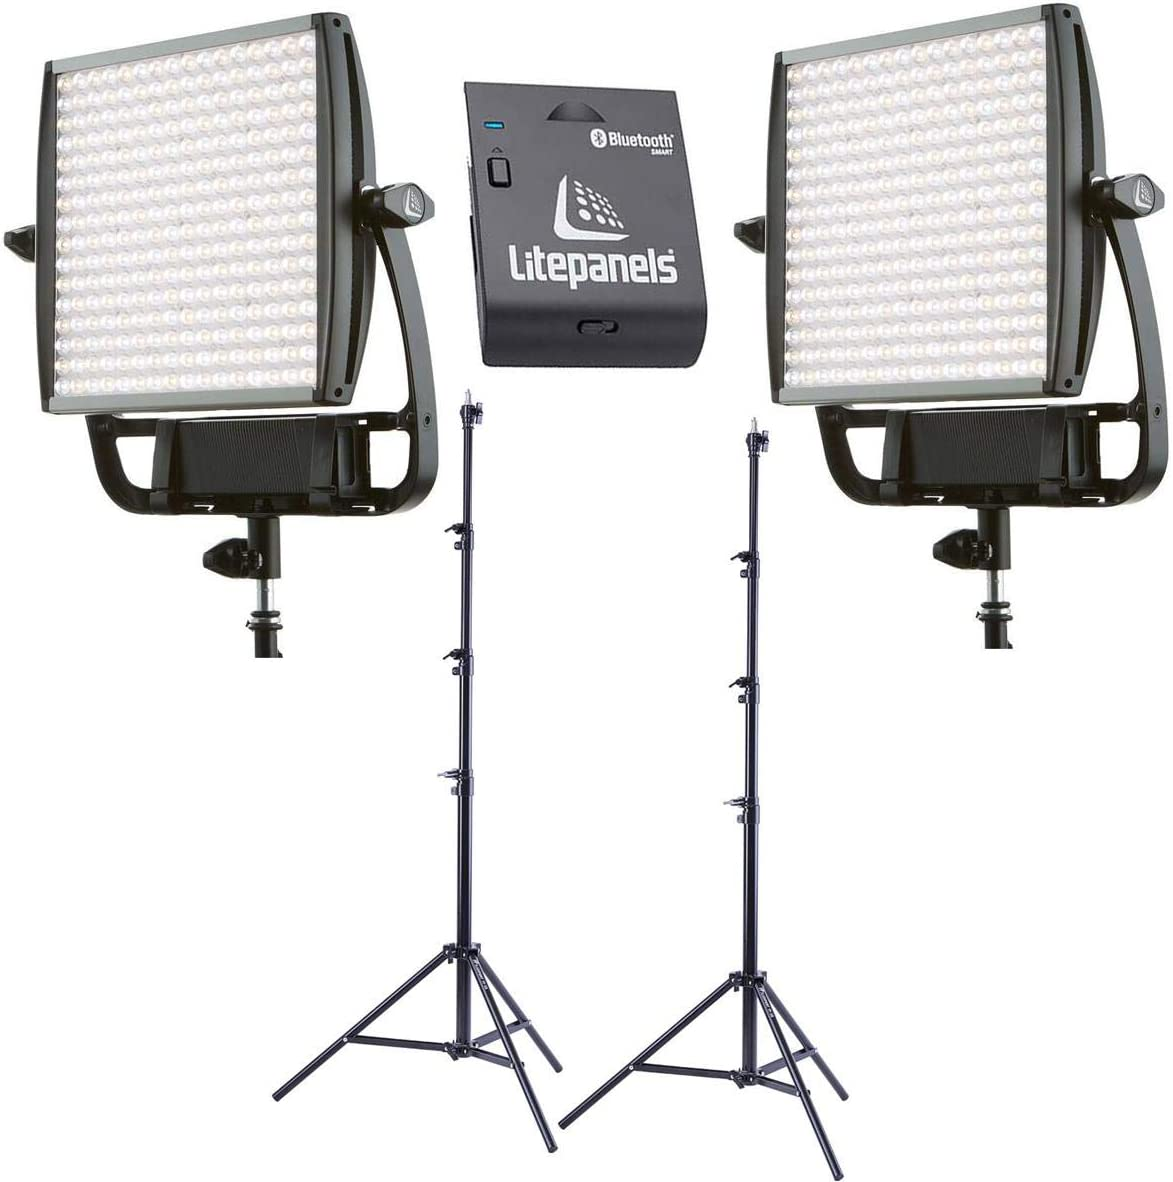 Bundle With 2 Pack Air Cushioned Heavy Duty Light Stand 9.5 Litepanels 2 Pack Astra 6X Bi-Color Next Generation LED Light Panel 105W Litepanels Astra 1x1 Bluetooth Communications Module